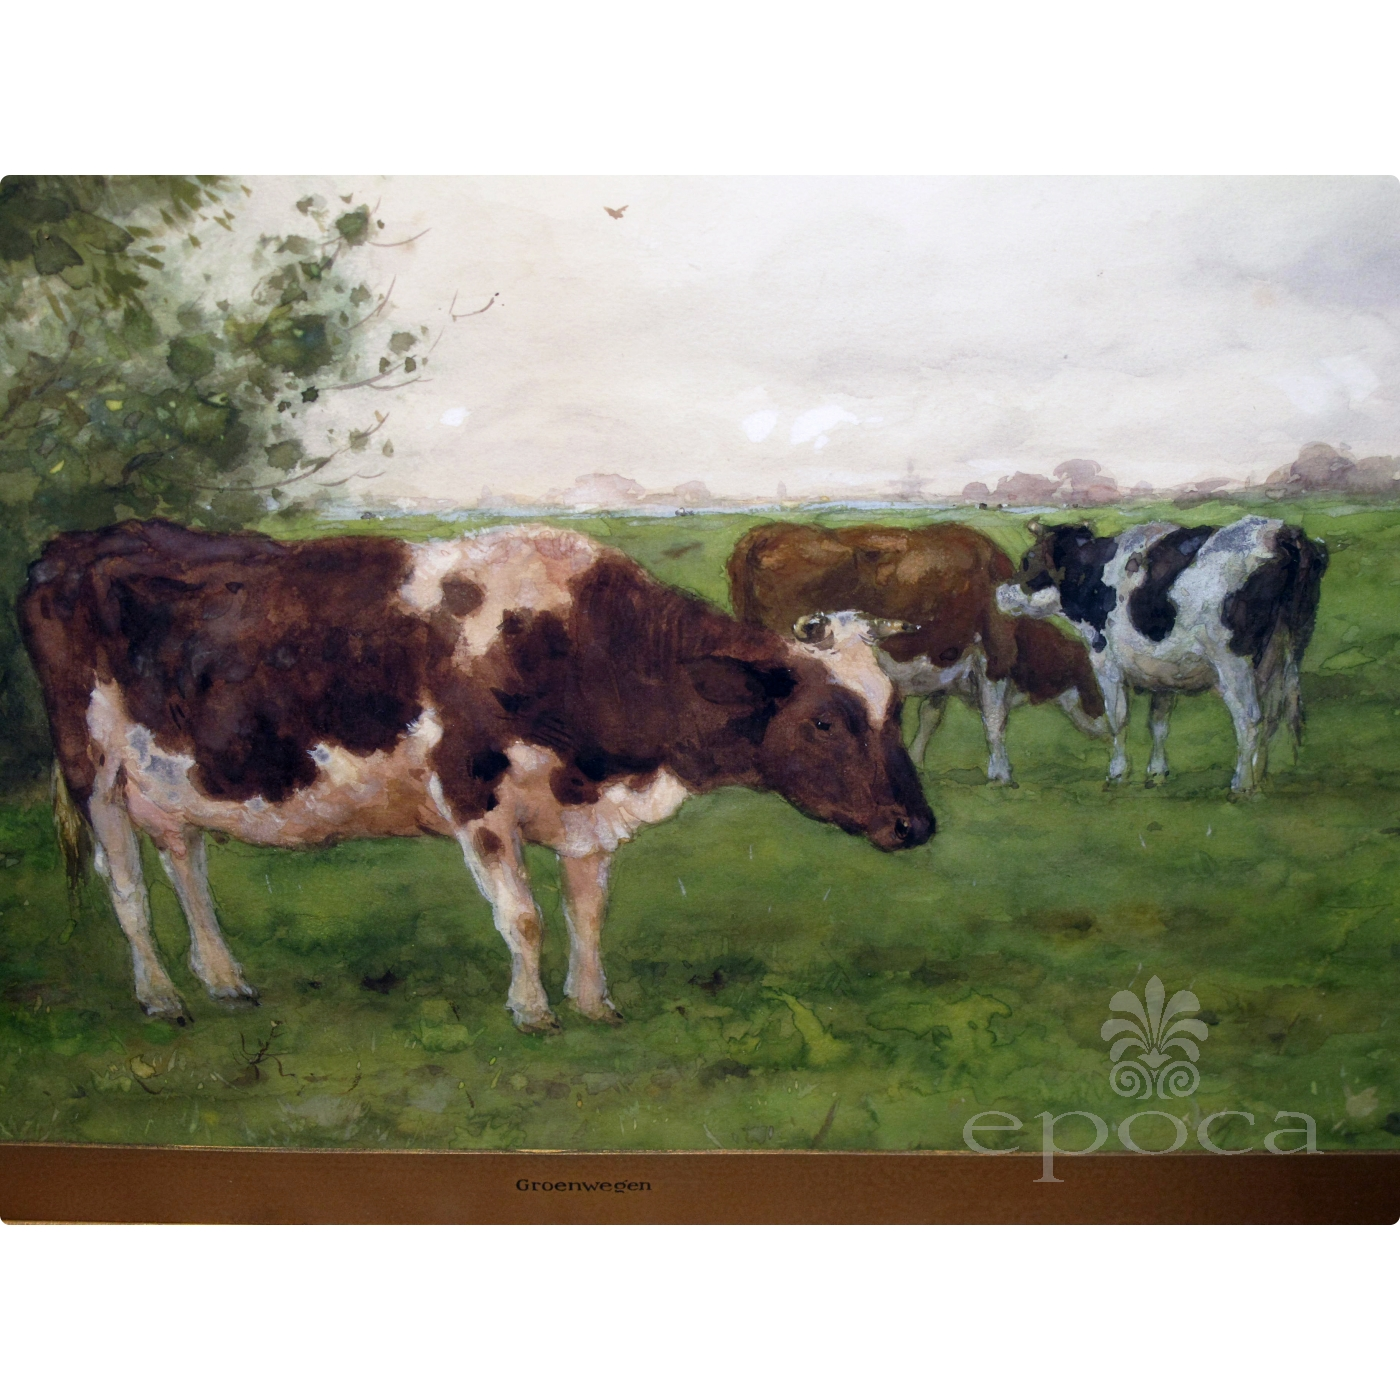 A Serene Dutch Landscape Watercolor Painting Of Three Cows